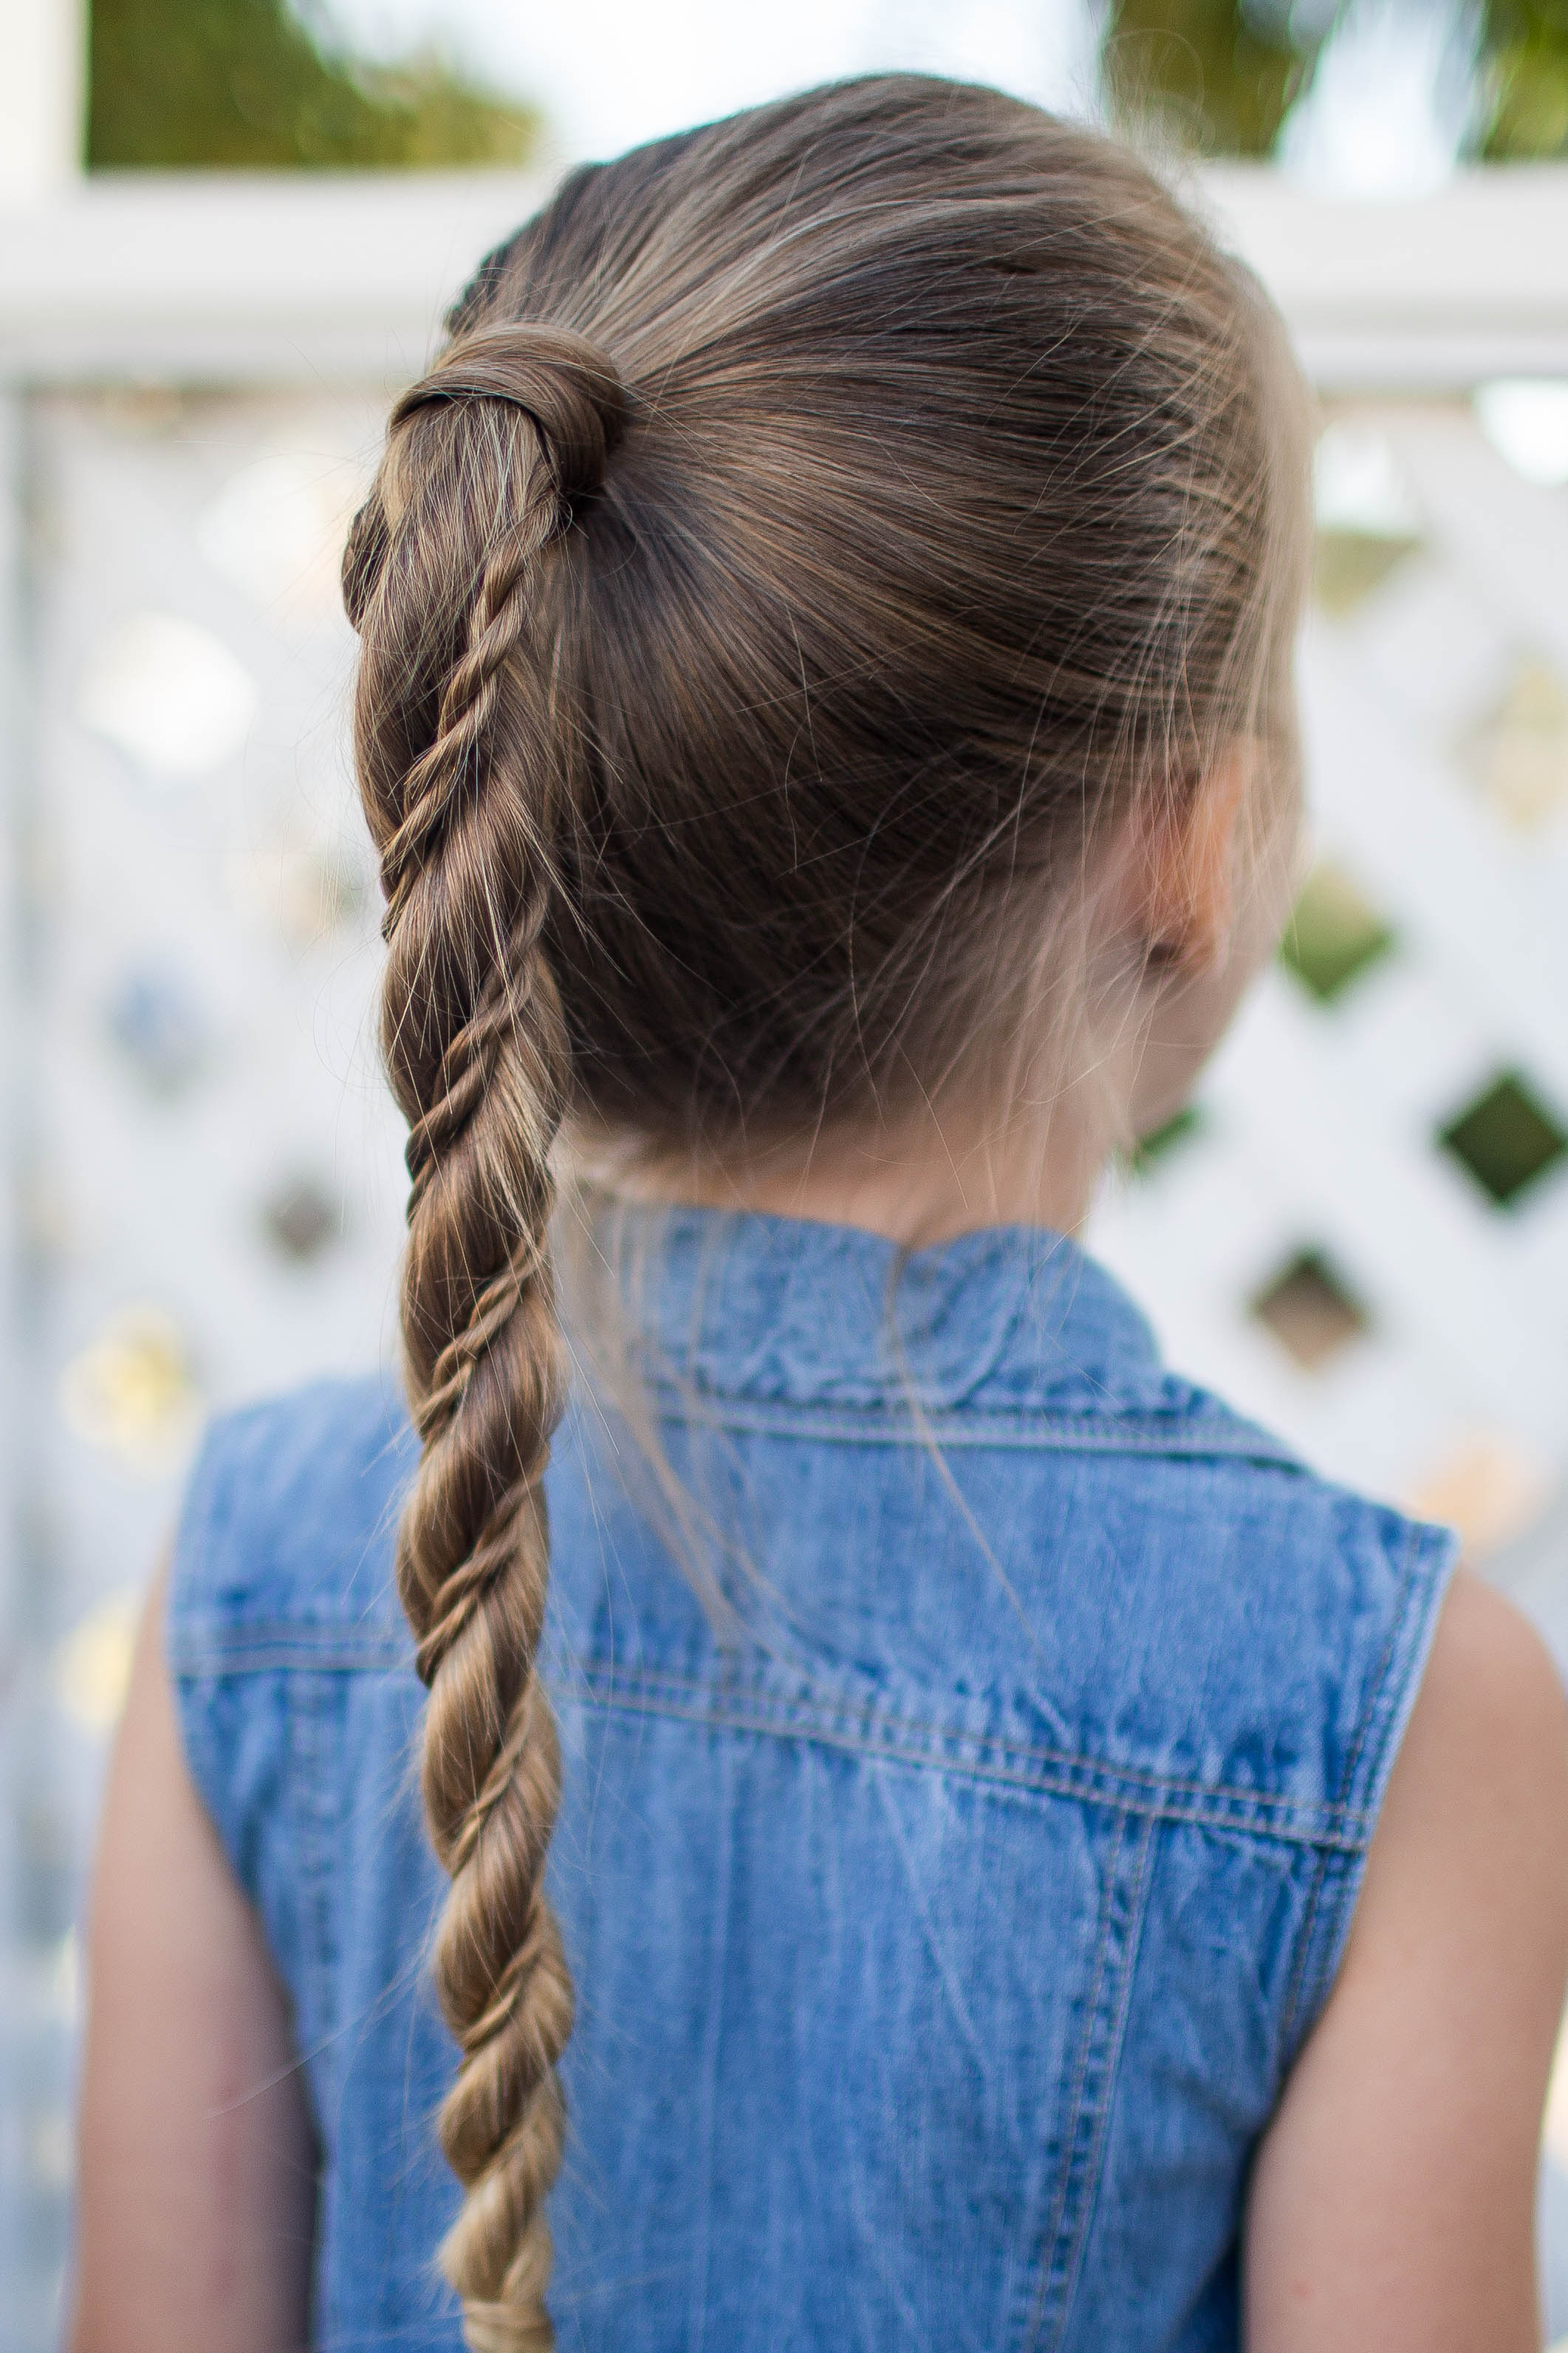 hairstyles cute easy ponytail hair twist simple styles wrap braids children hairstyle parent toddler master braid any cool kid ponytails